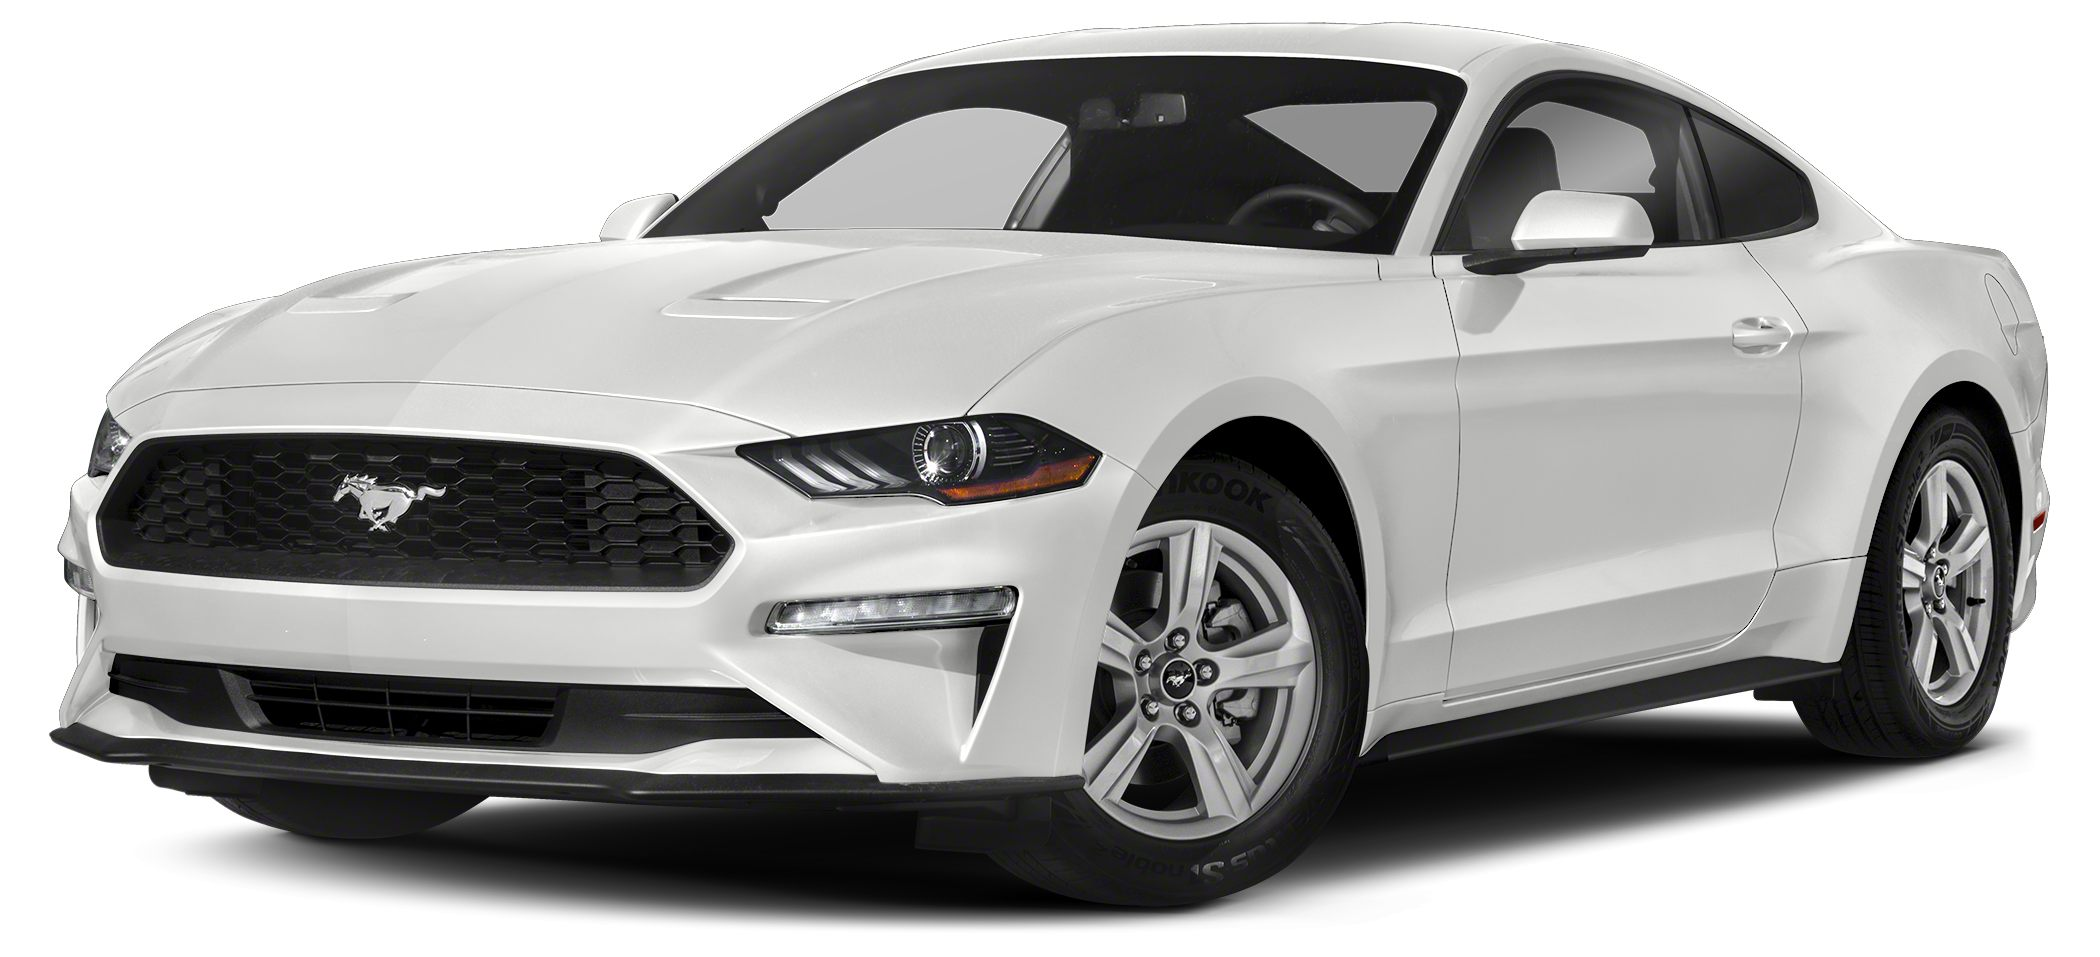 Ford Mustang Lease >> New 2019 Ford Mustang For Sale Lease Levittown Ny Vin 1fa6p8cf7k5165916